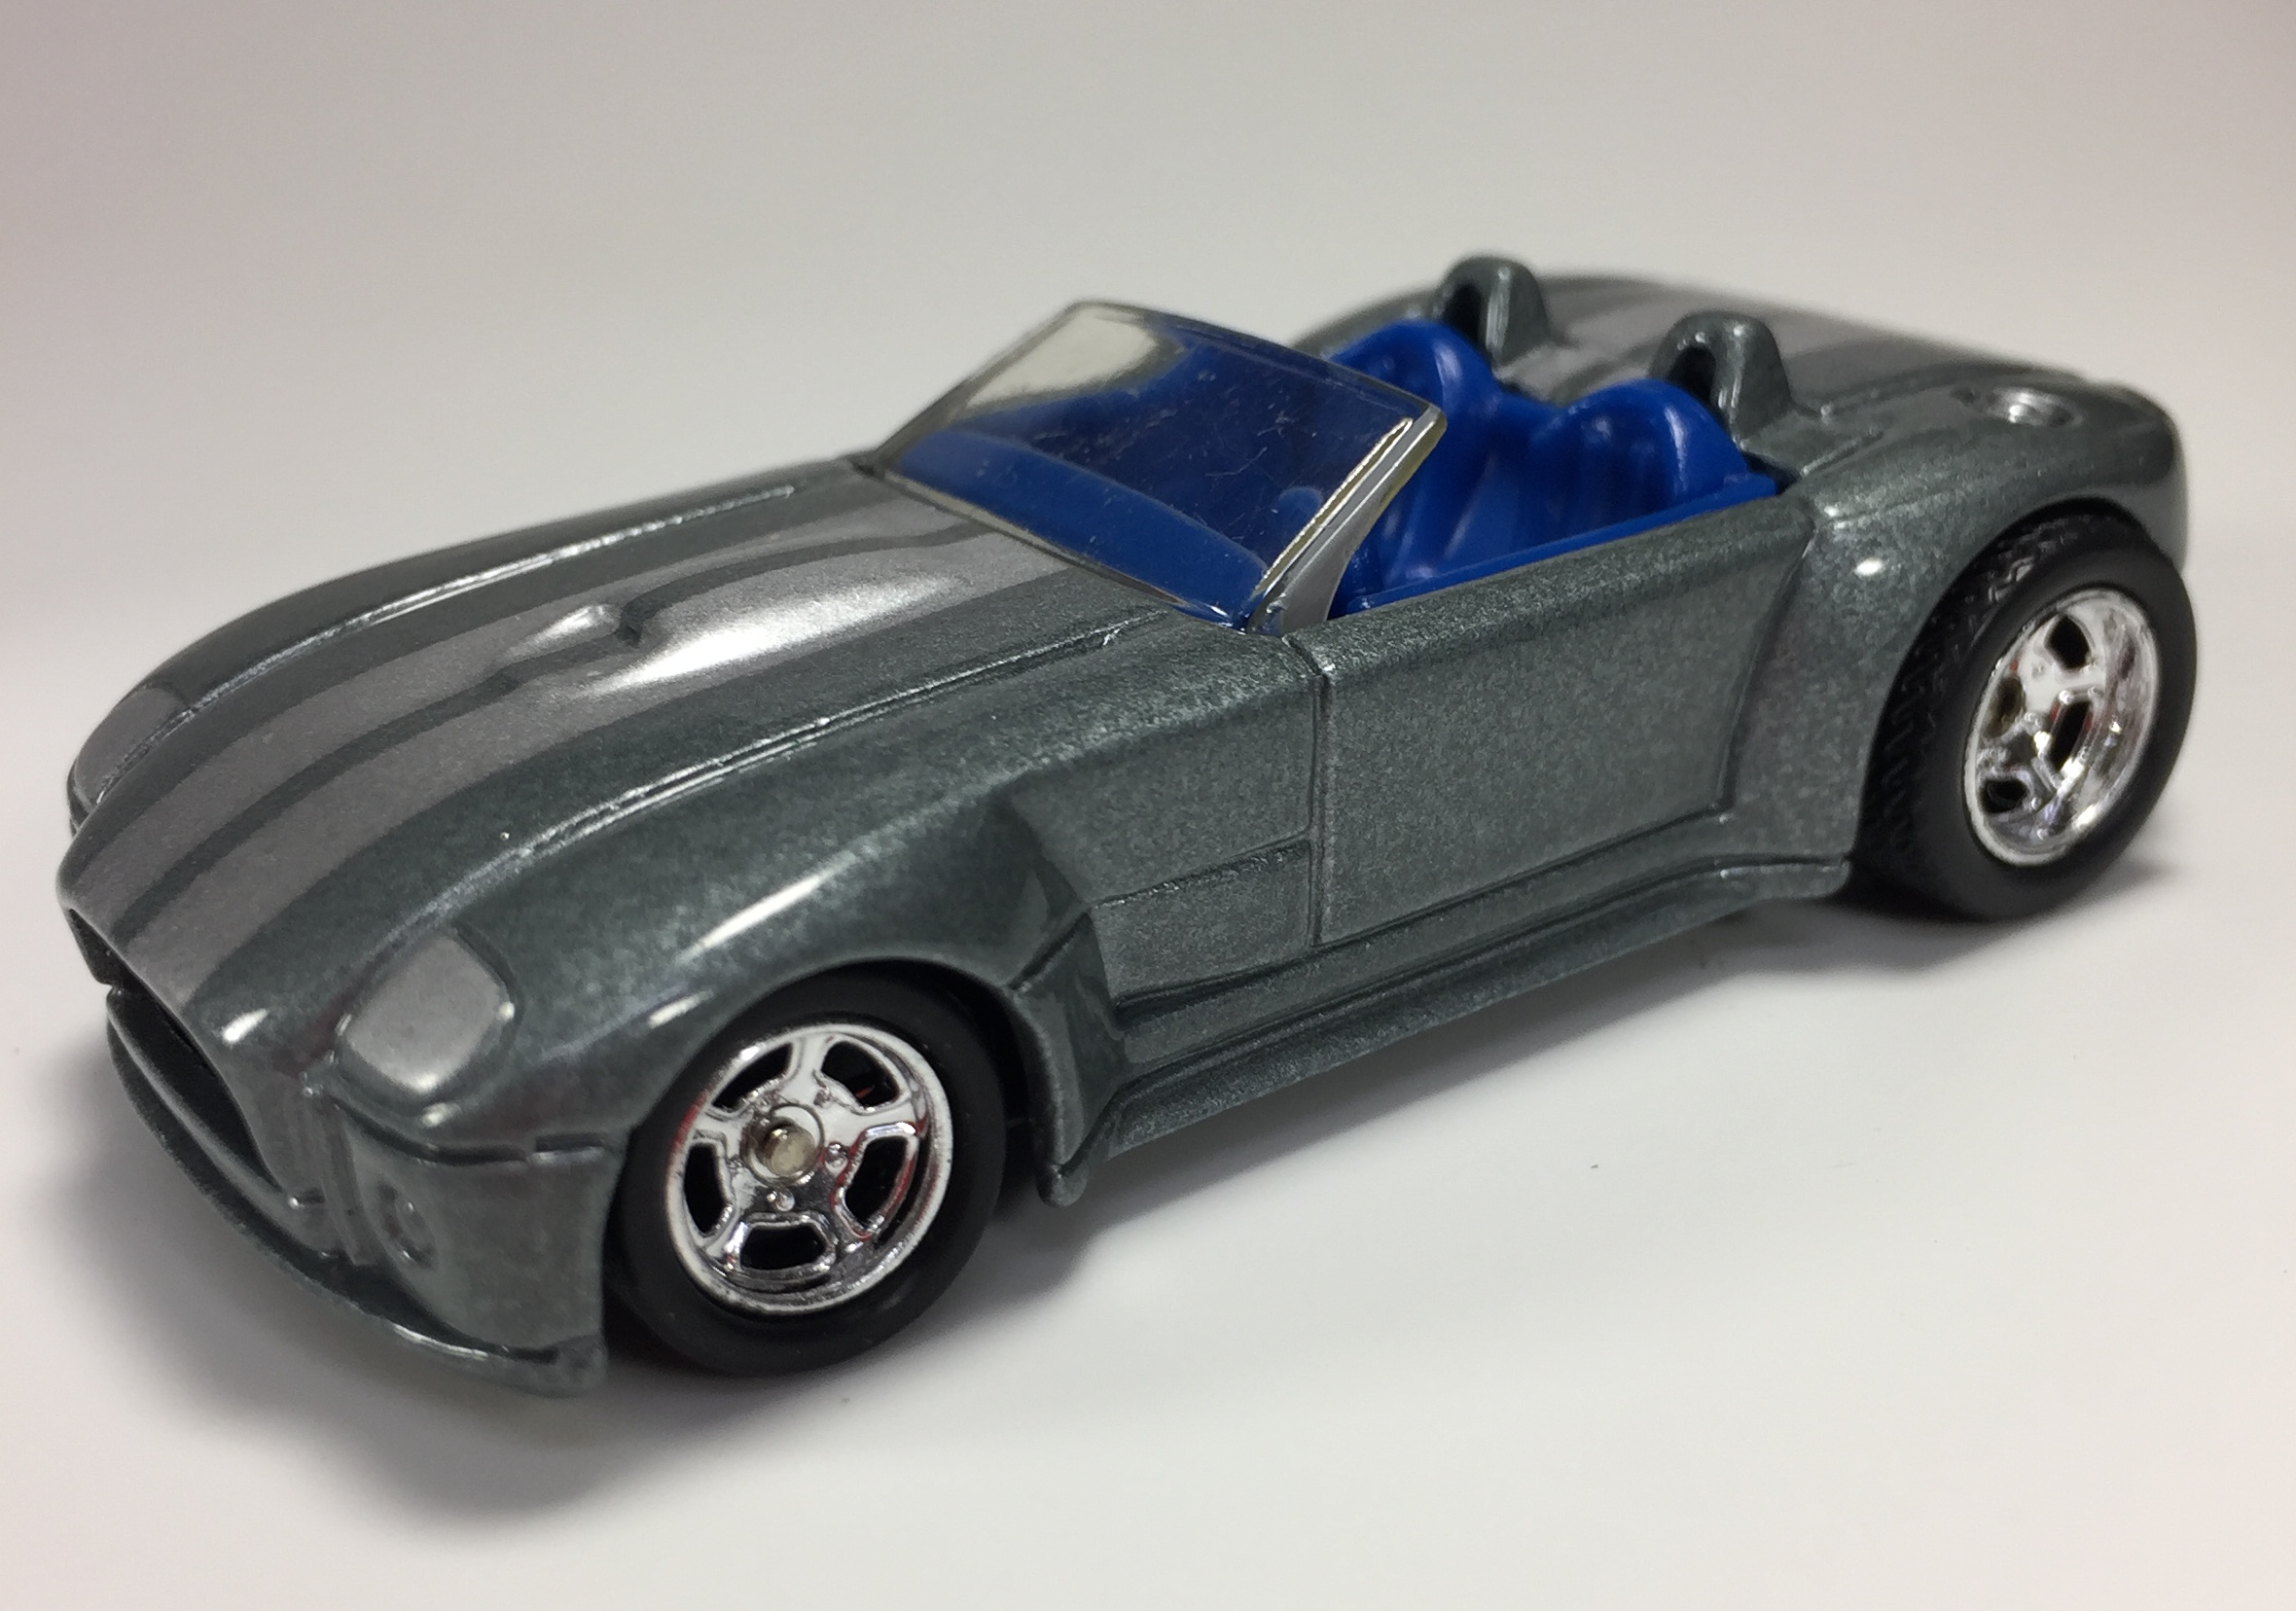 Hot Wheels Ford Shelby Cobra Concept With Real Roder